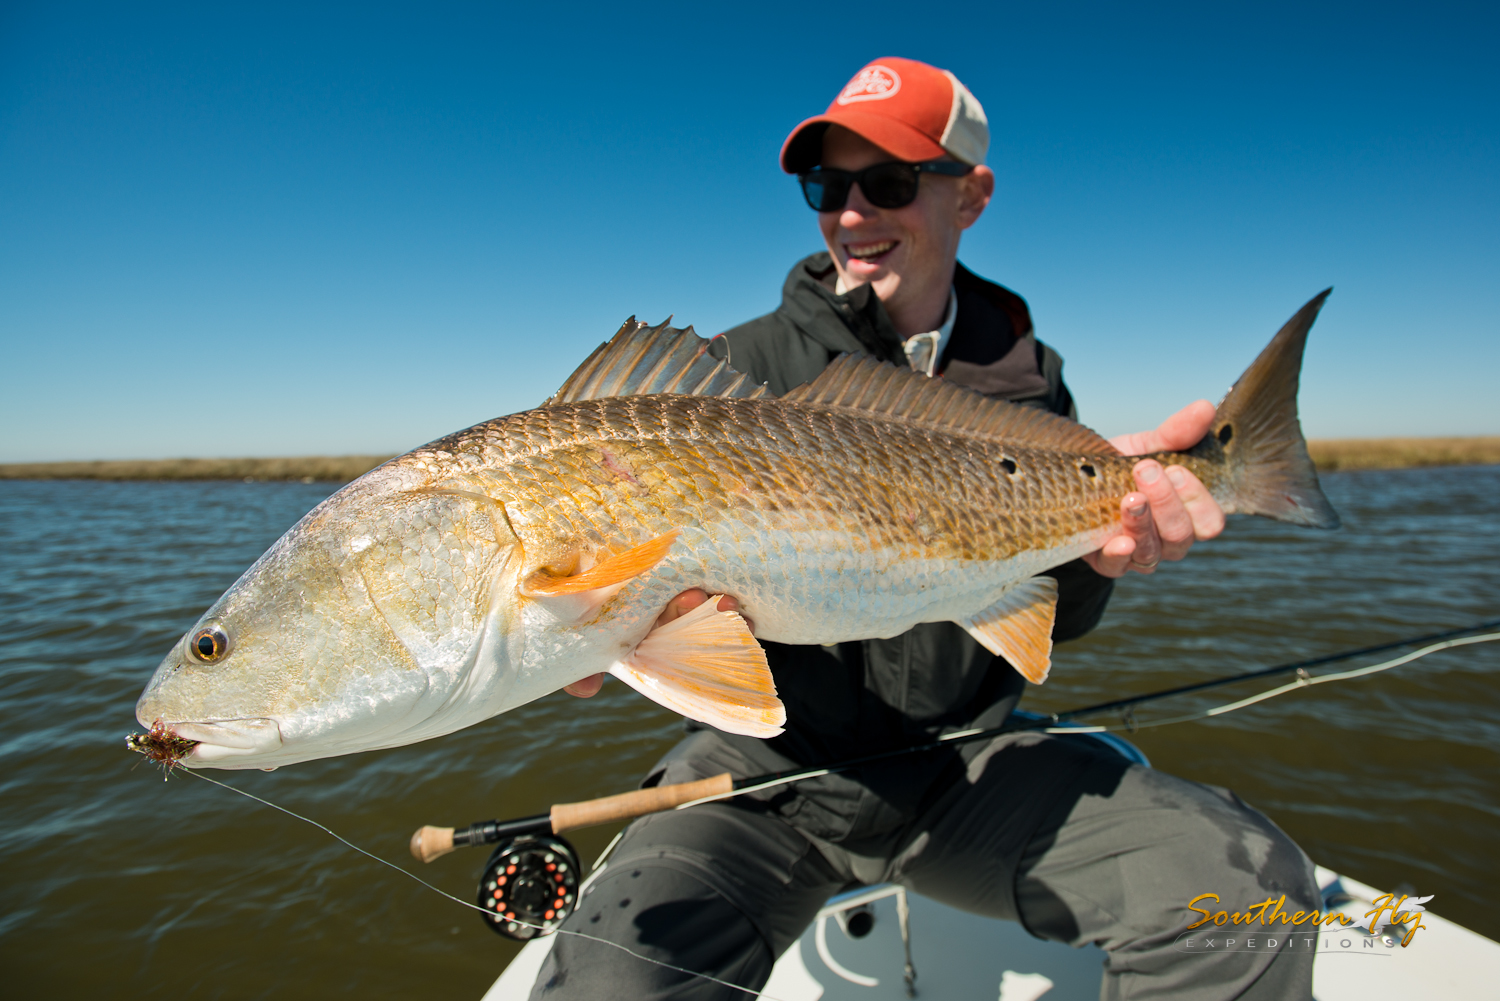 Fly fishing for huge redfish louisiana with southern fly expeditions and captain brandon keck